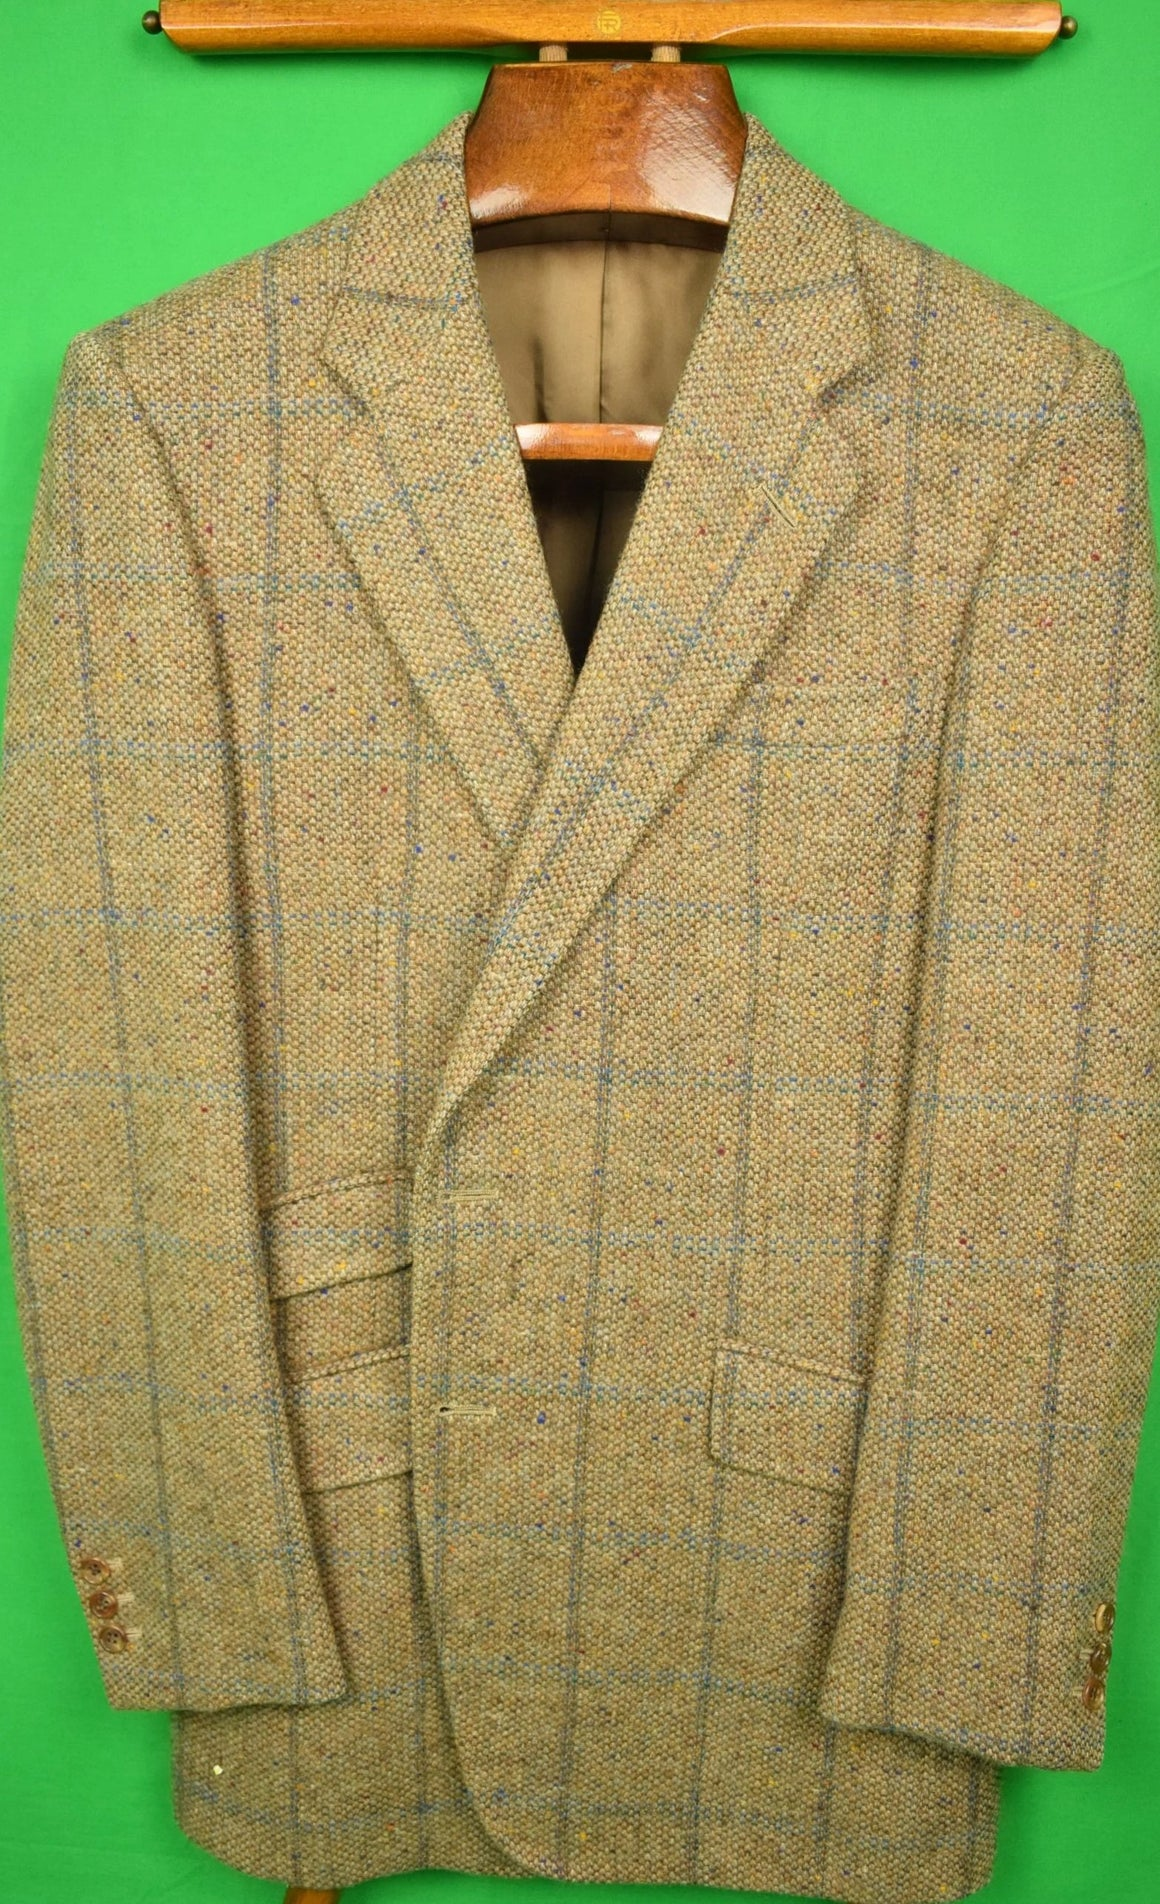 "H. Huntsman & Sons 11 Savile Row Barleycorn Donegal Tweed Windowpane Sport Jacket Sz 41""R"